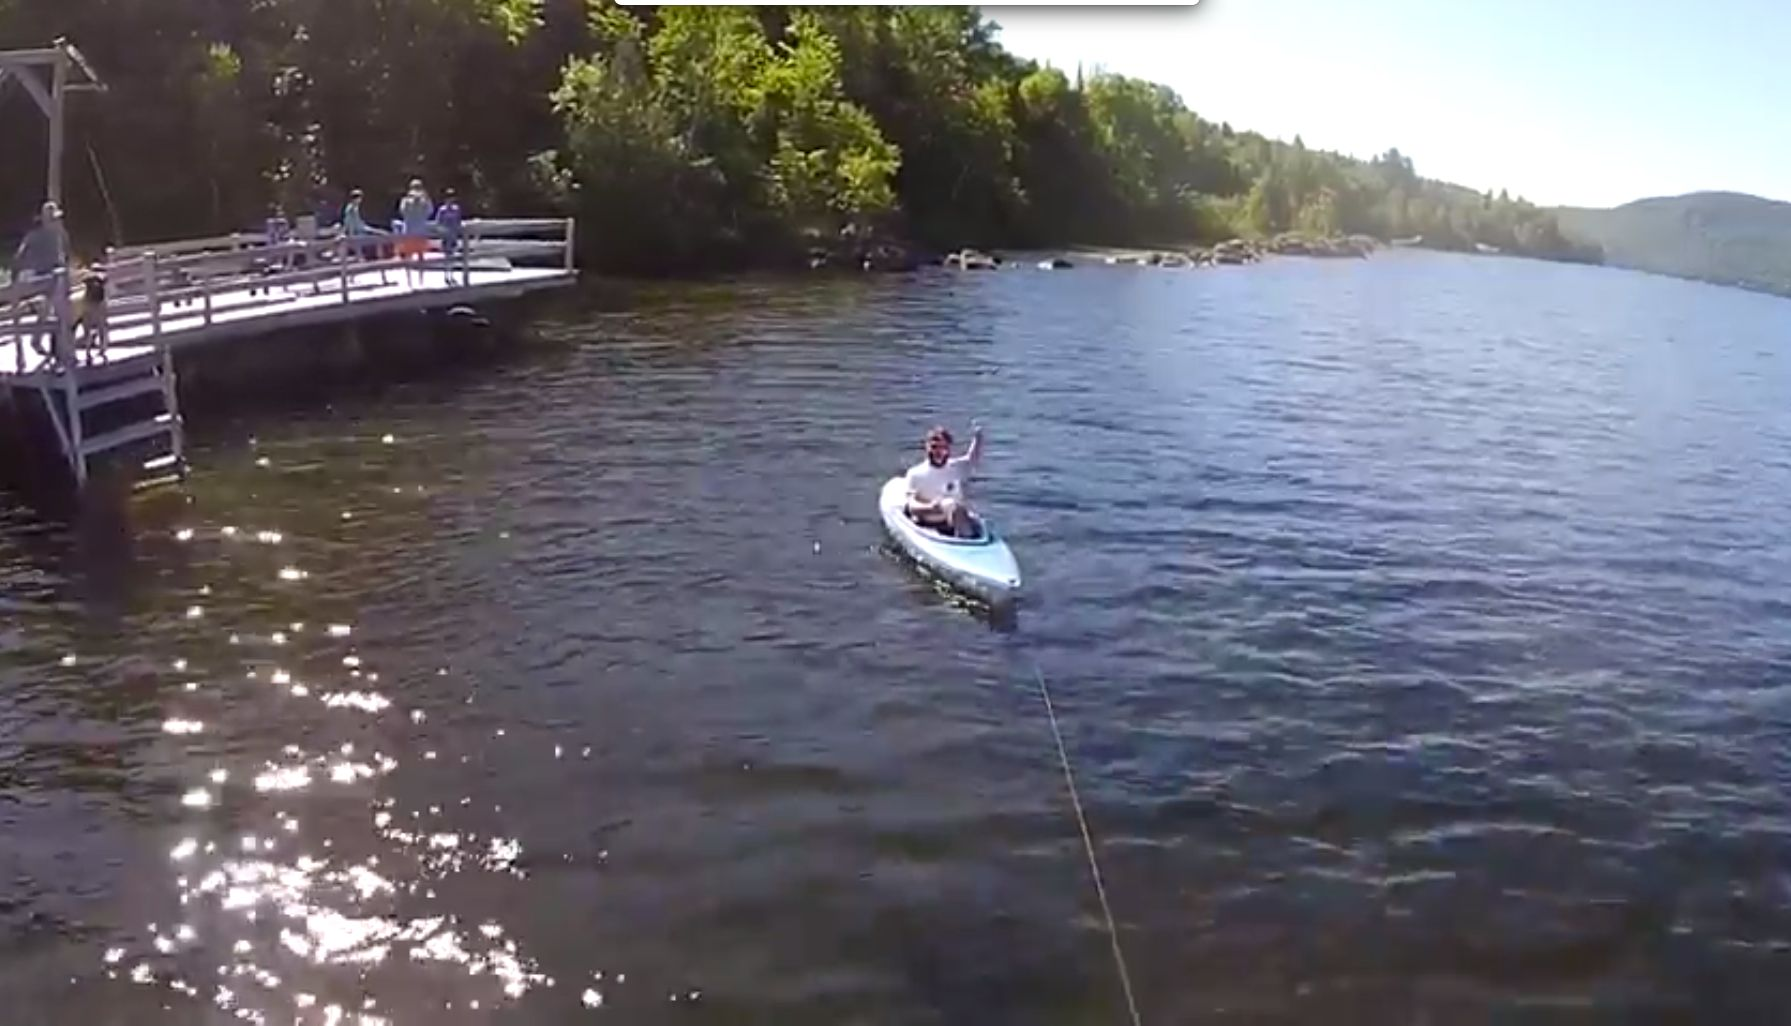 Forget Paddling, You Can Now Pilot A Kayak With A